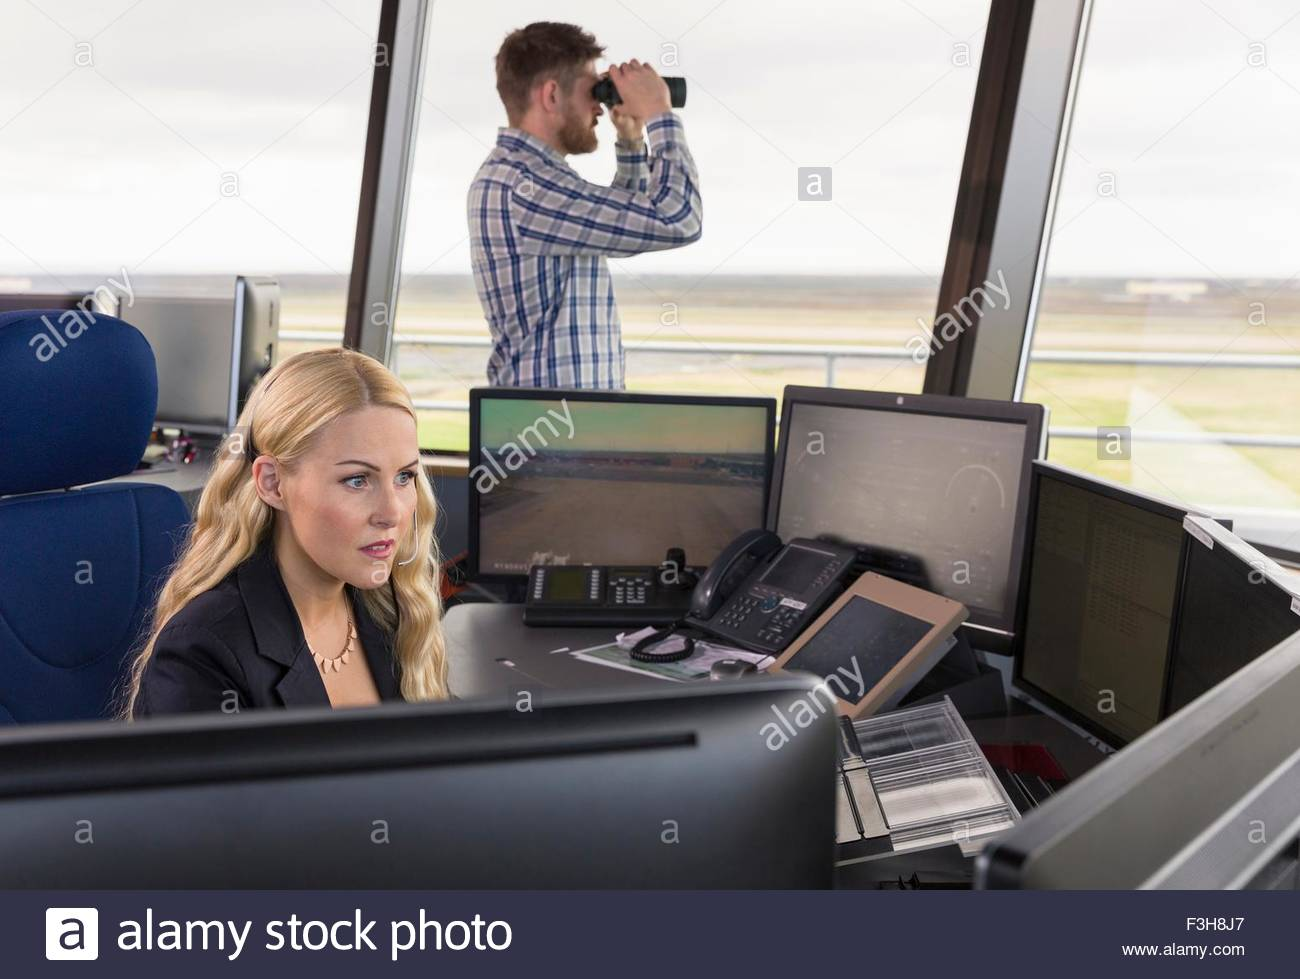 People working in air traffic control tower, monitoring screens and looking through binoculars - Stock Image